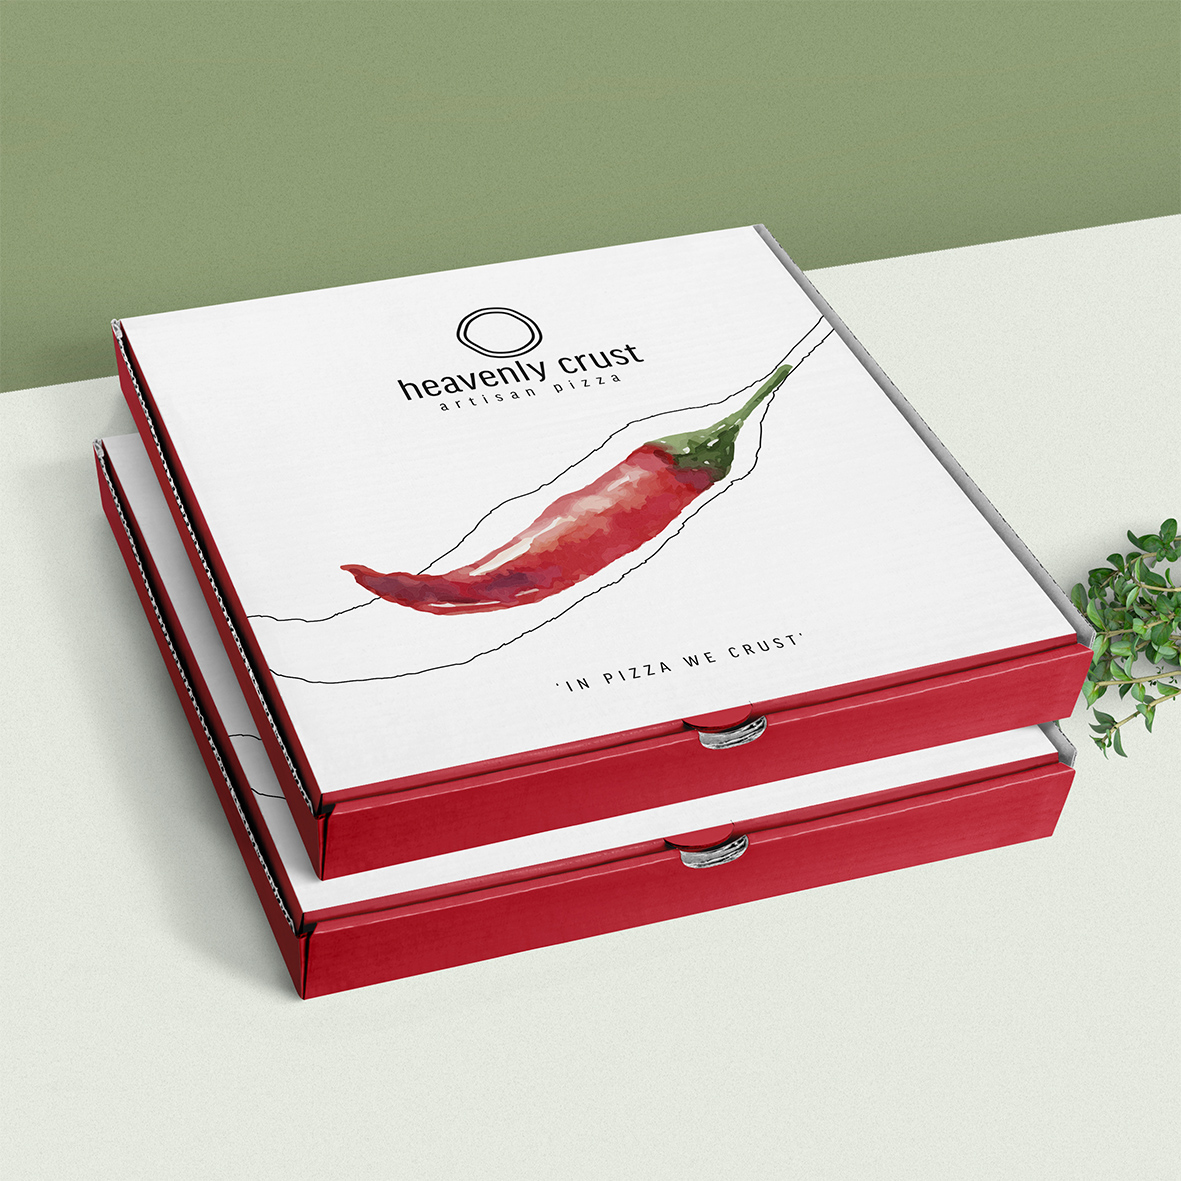 heavenly_crust_pizza_package_packaging_restaurant_identity_pepper